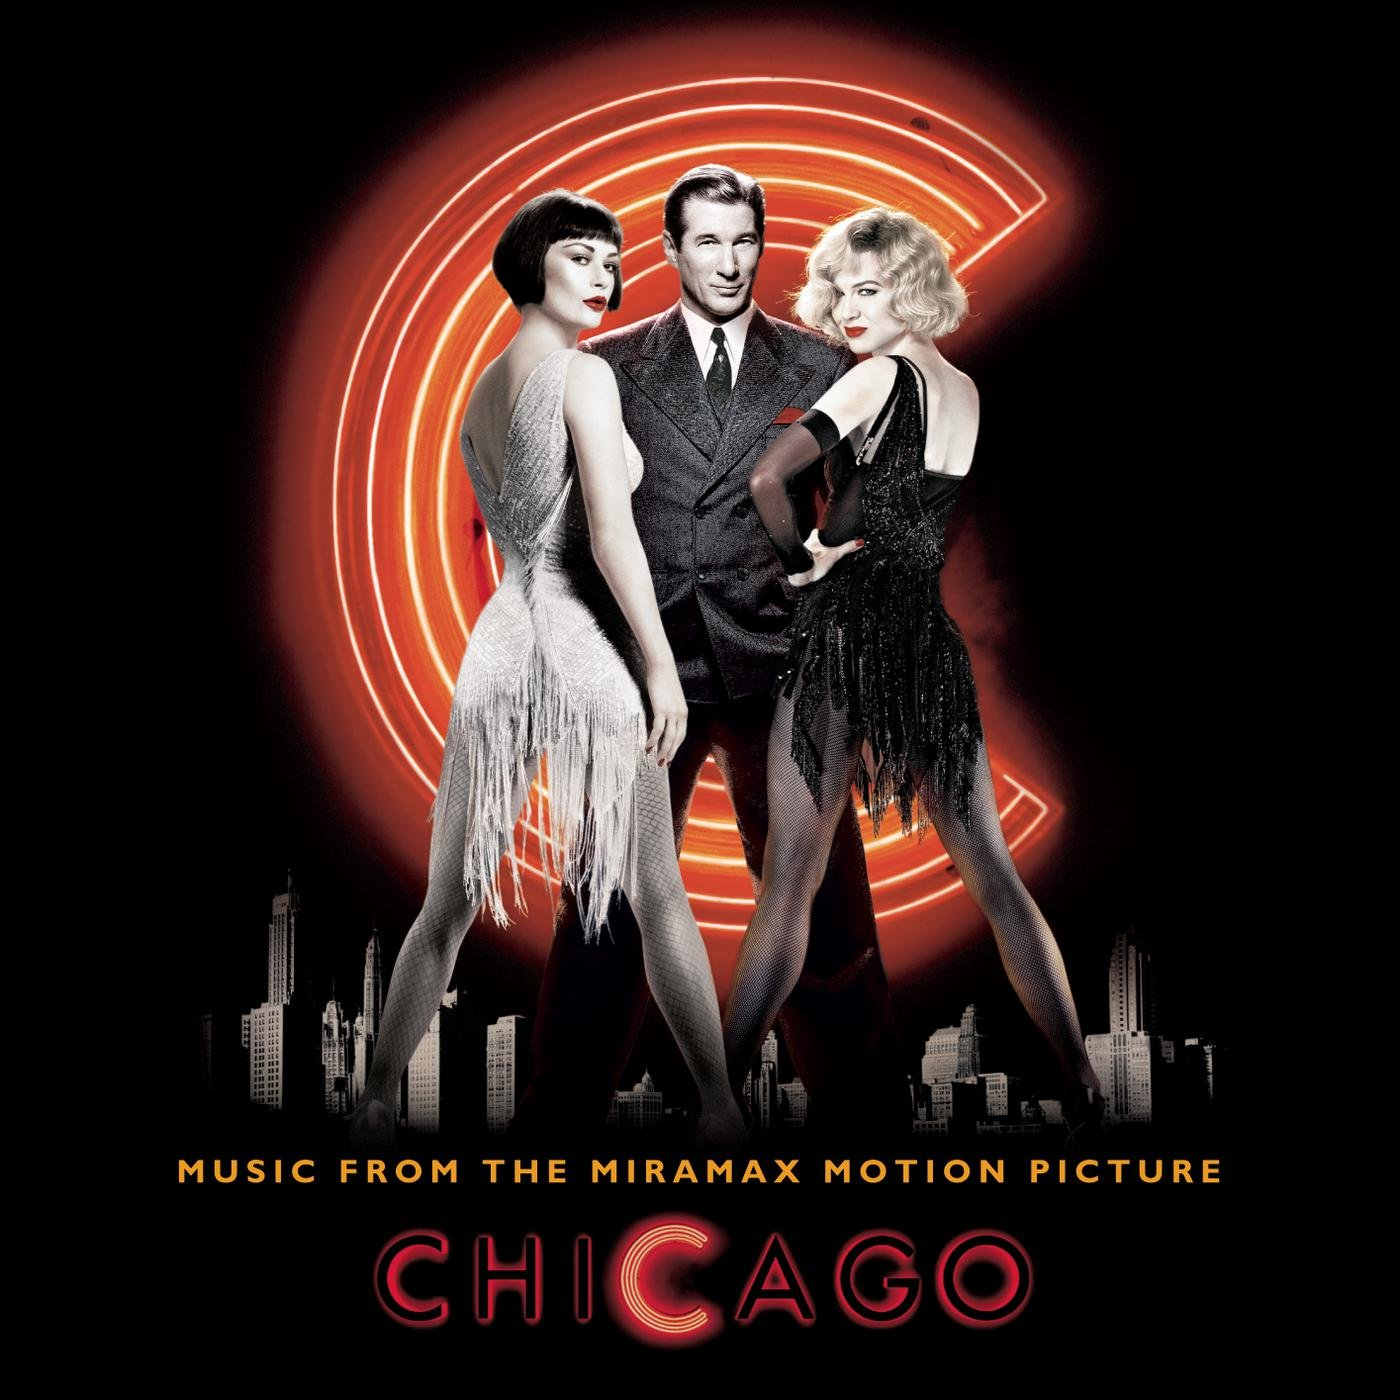 bande originale soundtrack ost score chicago disney miramax